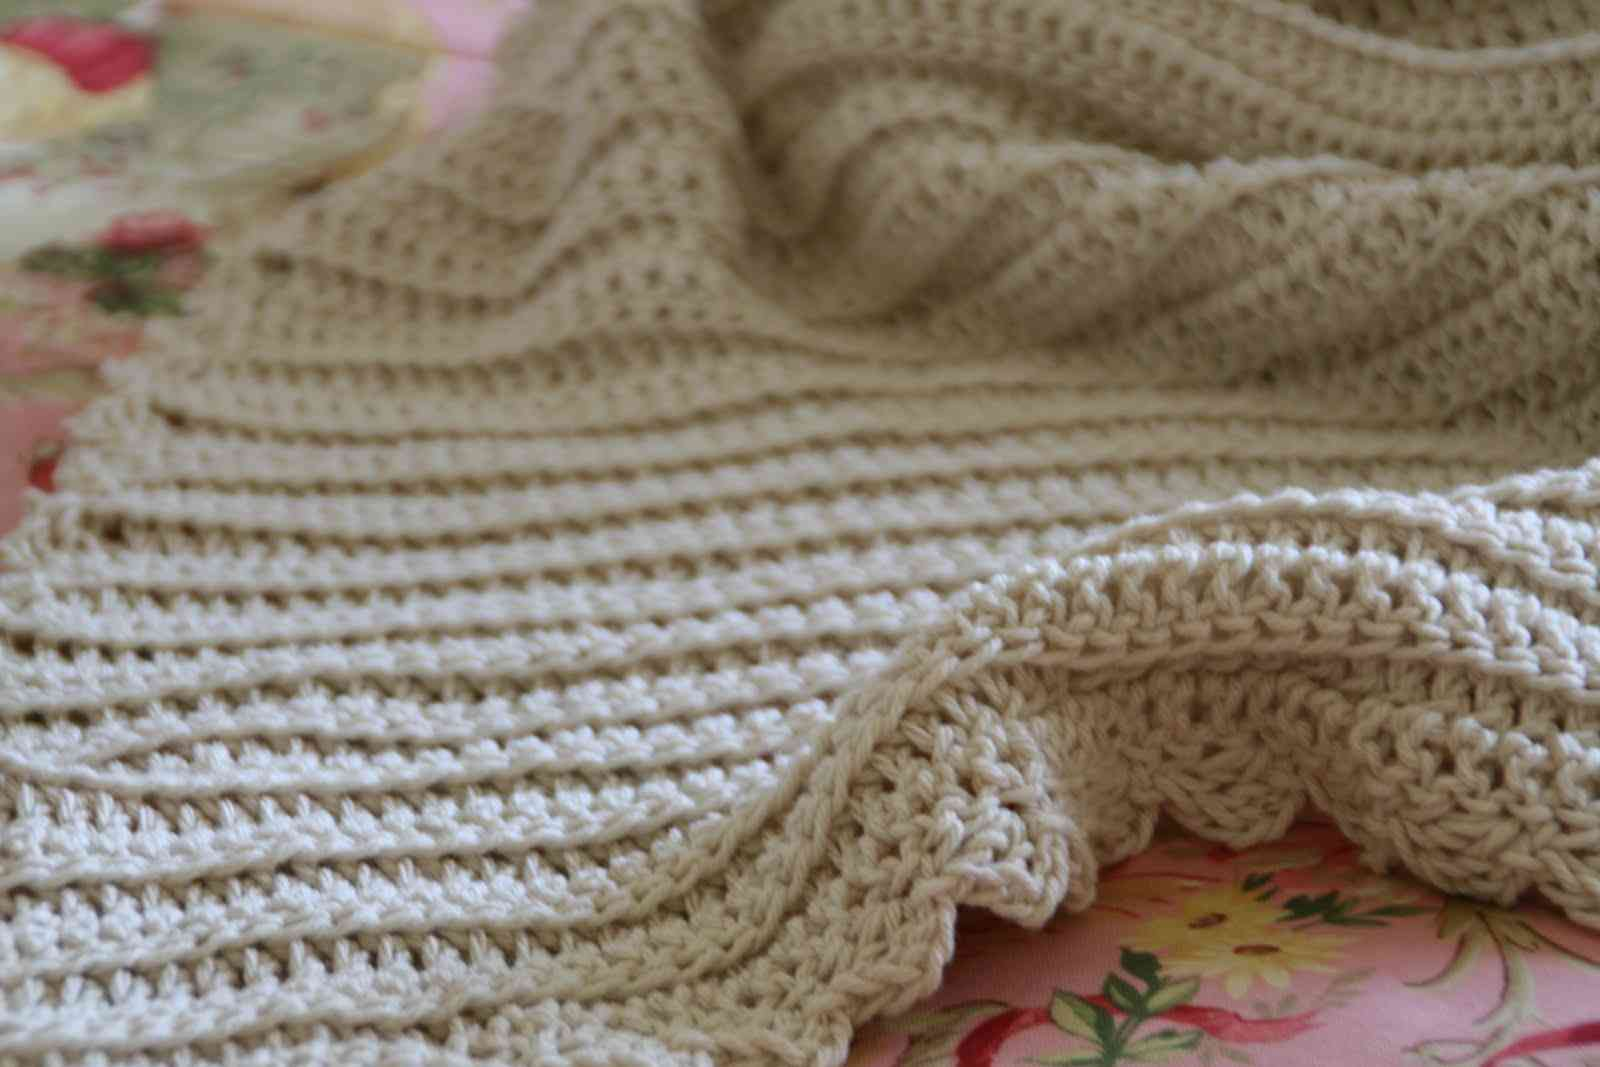 Crochet Patterns Throws : Crochet Baby Blanket Patterns Pictures to pin on Pinterest